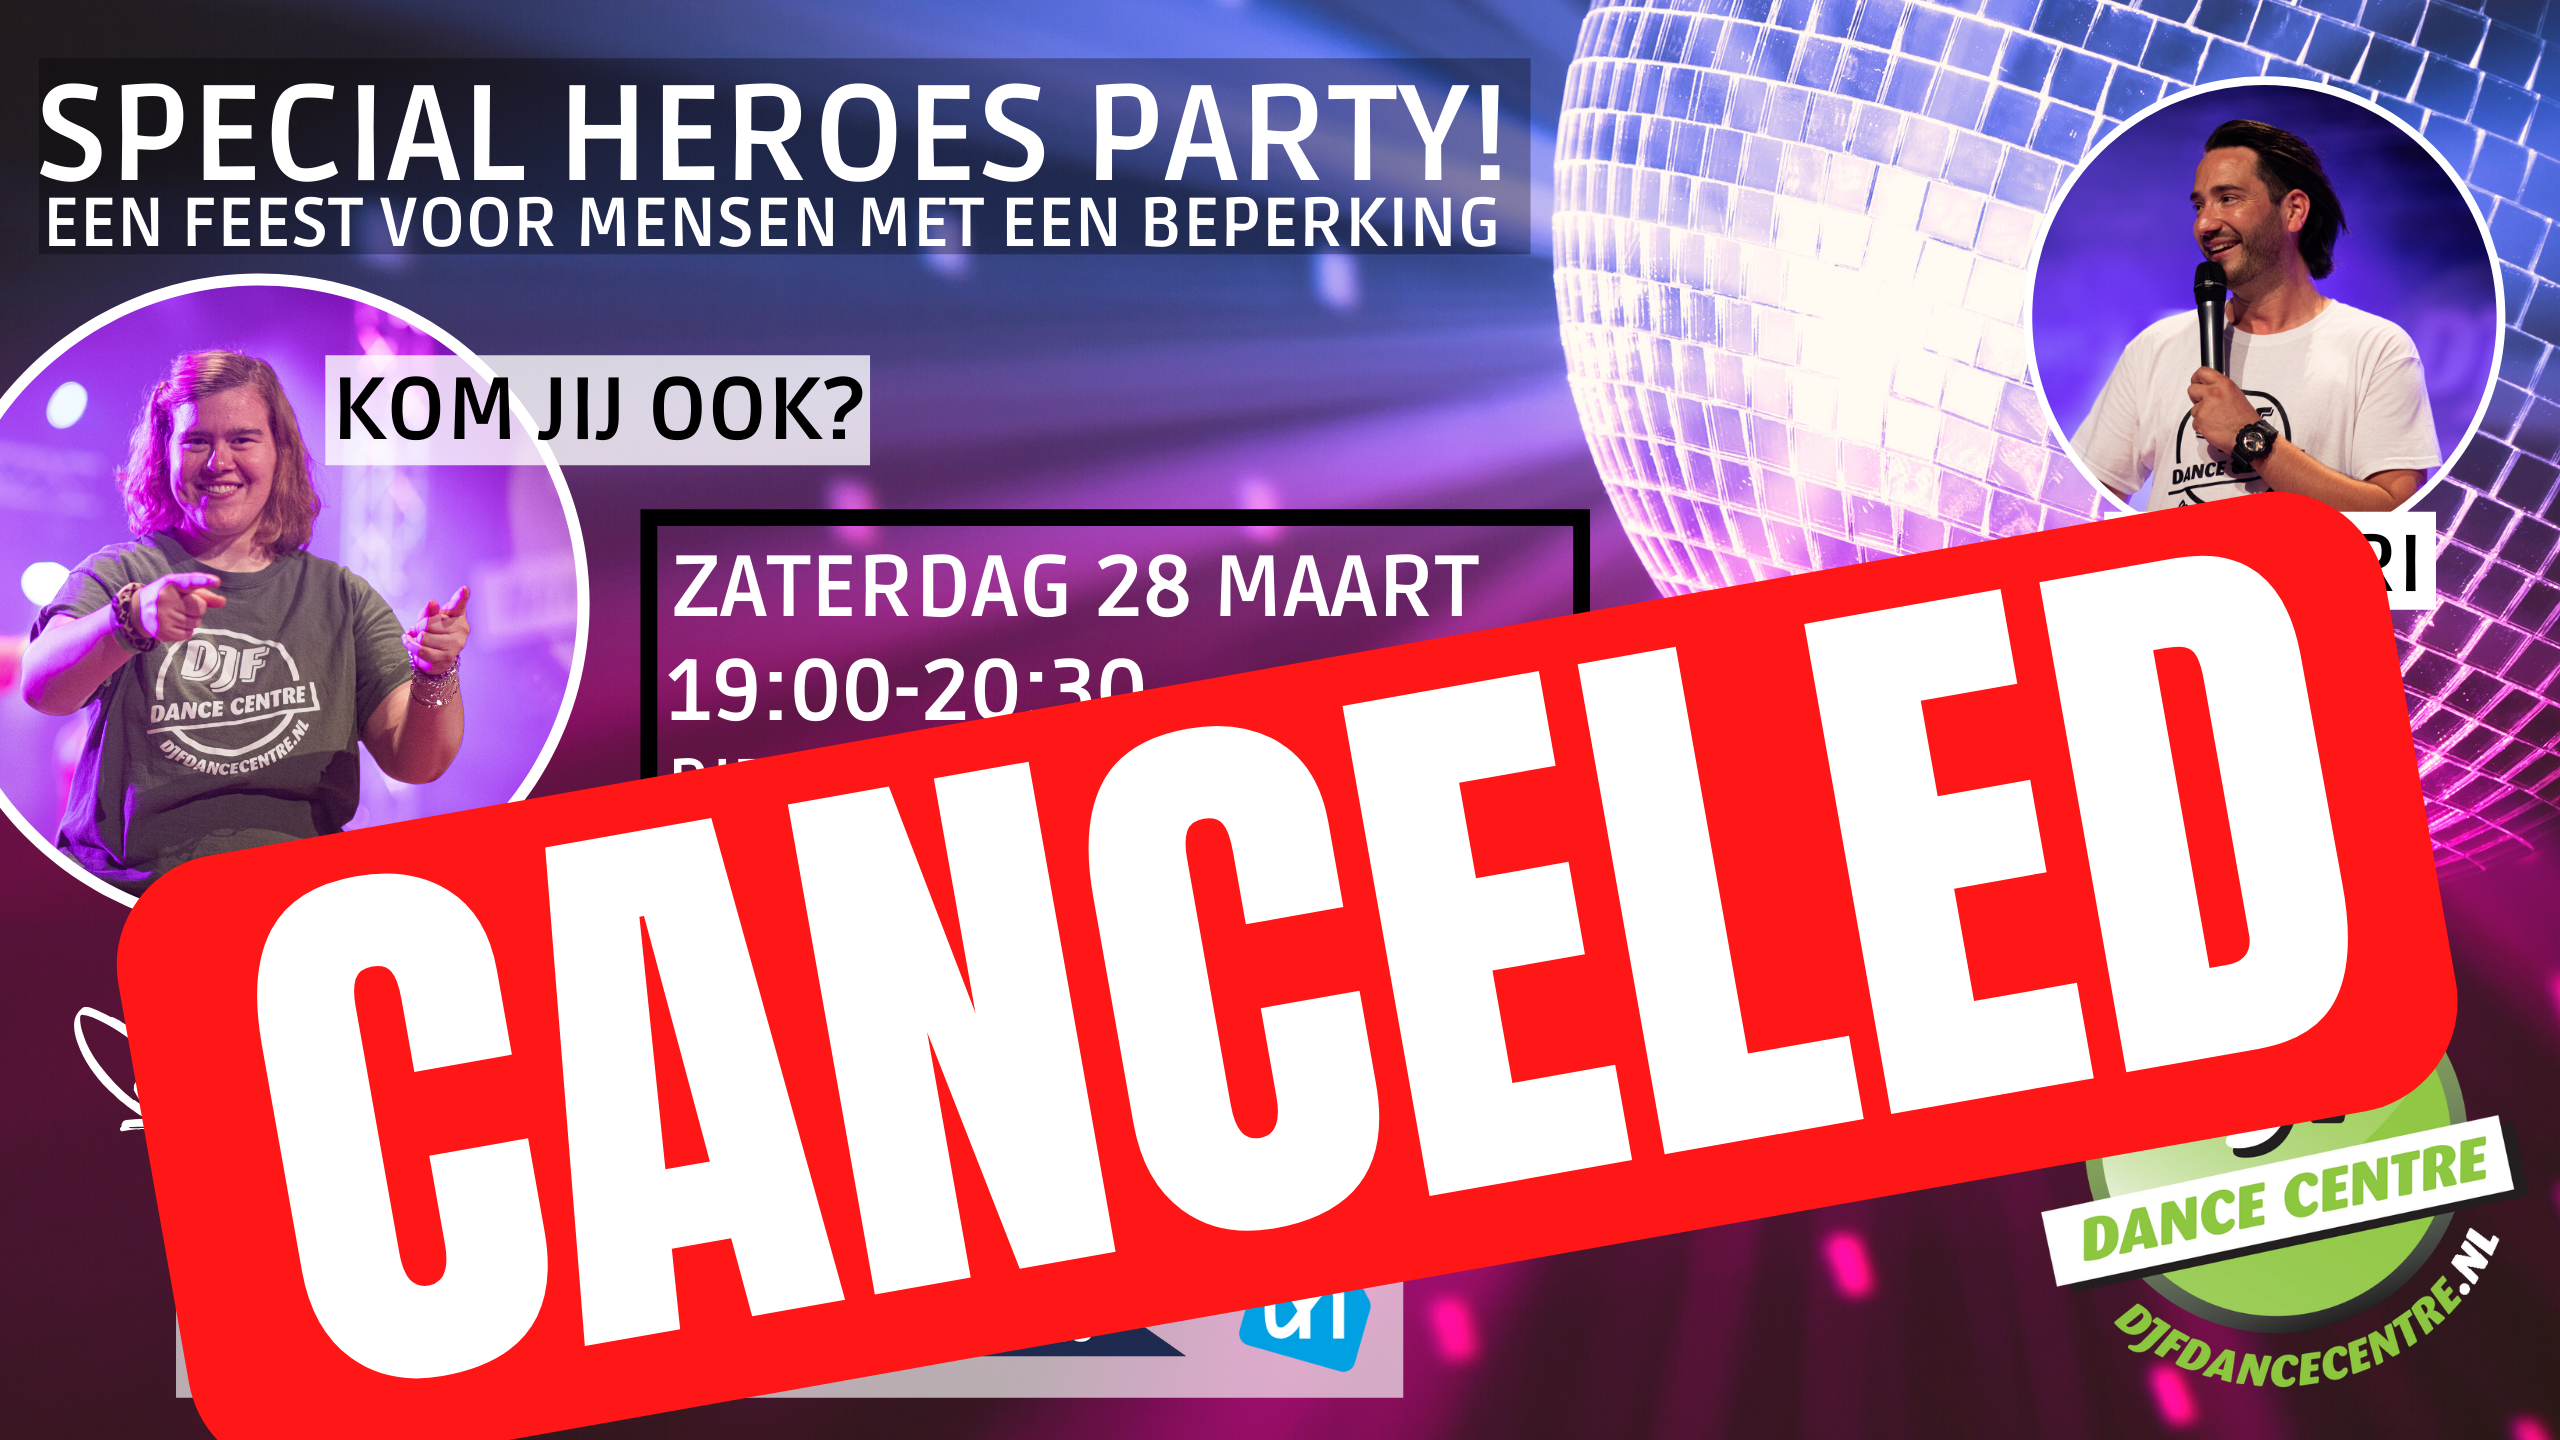 SPECIAL HEROES PARTY! CANCELED